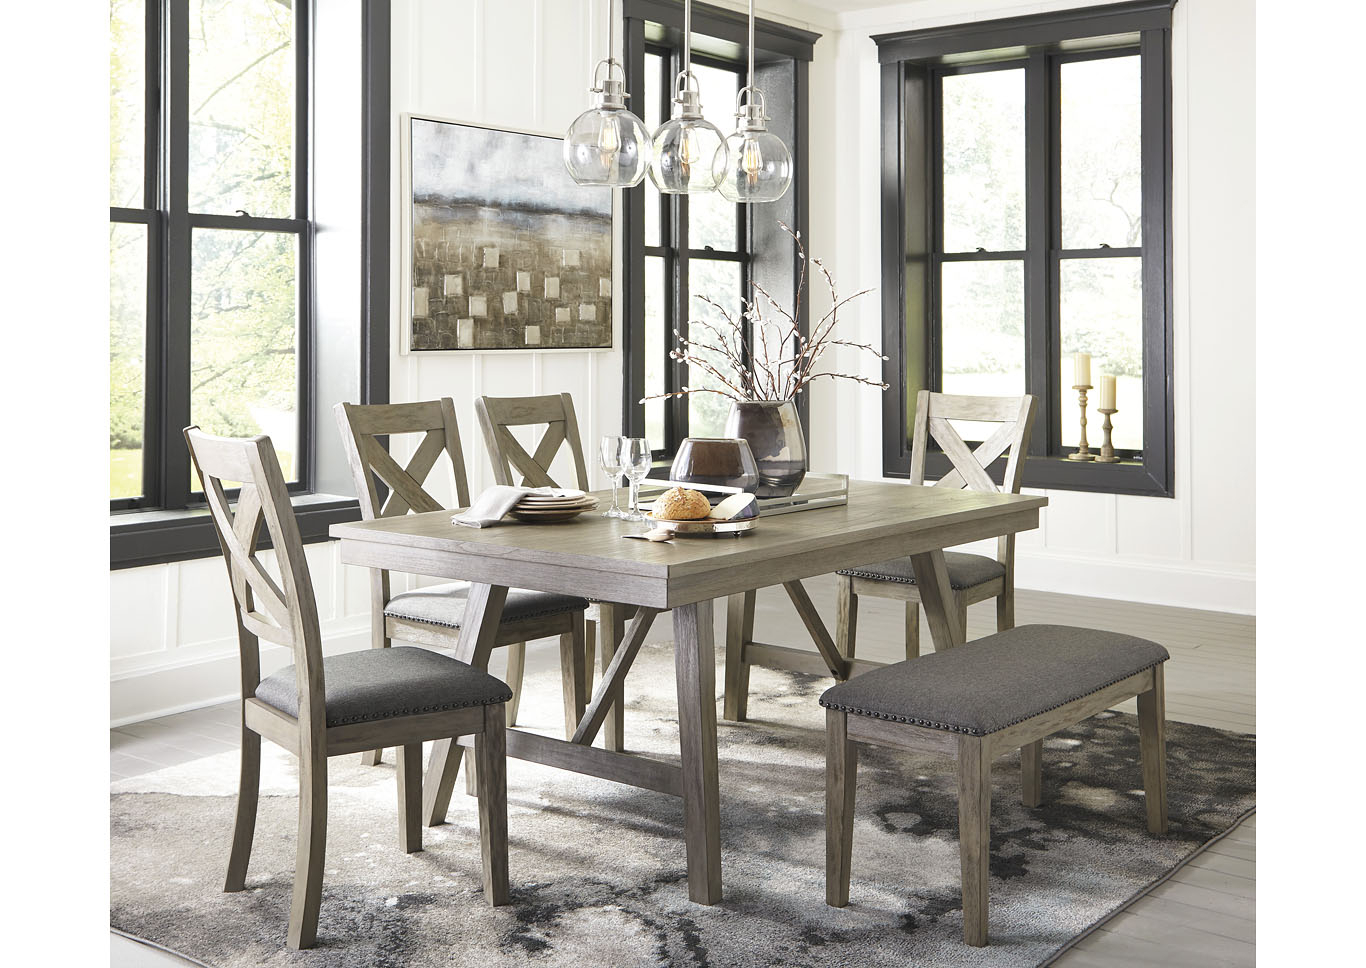 Johnson's Furniture Aldwin Gray Dining Table W/4 Side Chairs Throughout Most Recent Johnson Round Pedestal Dining Tables (View 16 of 25)